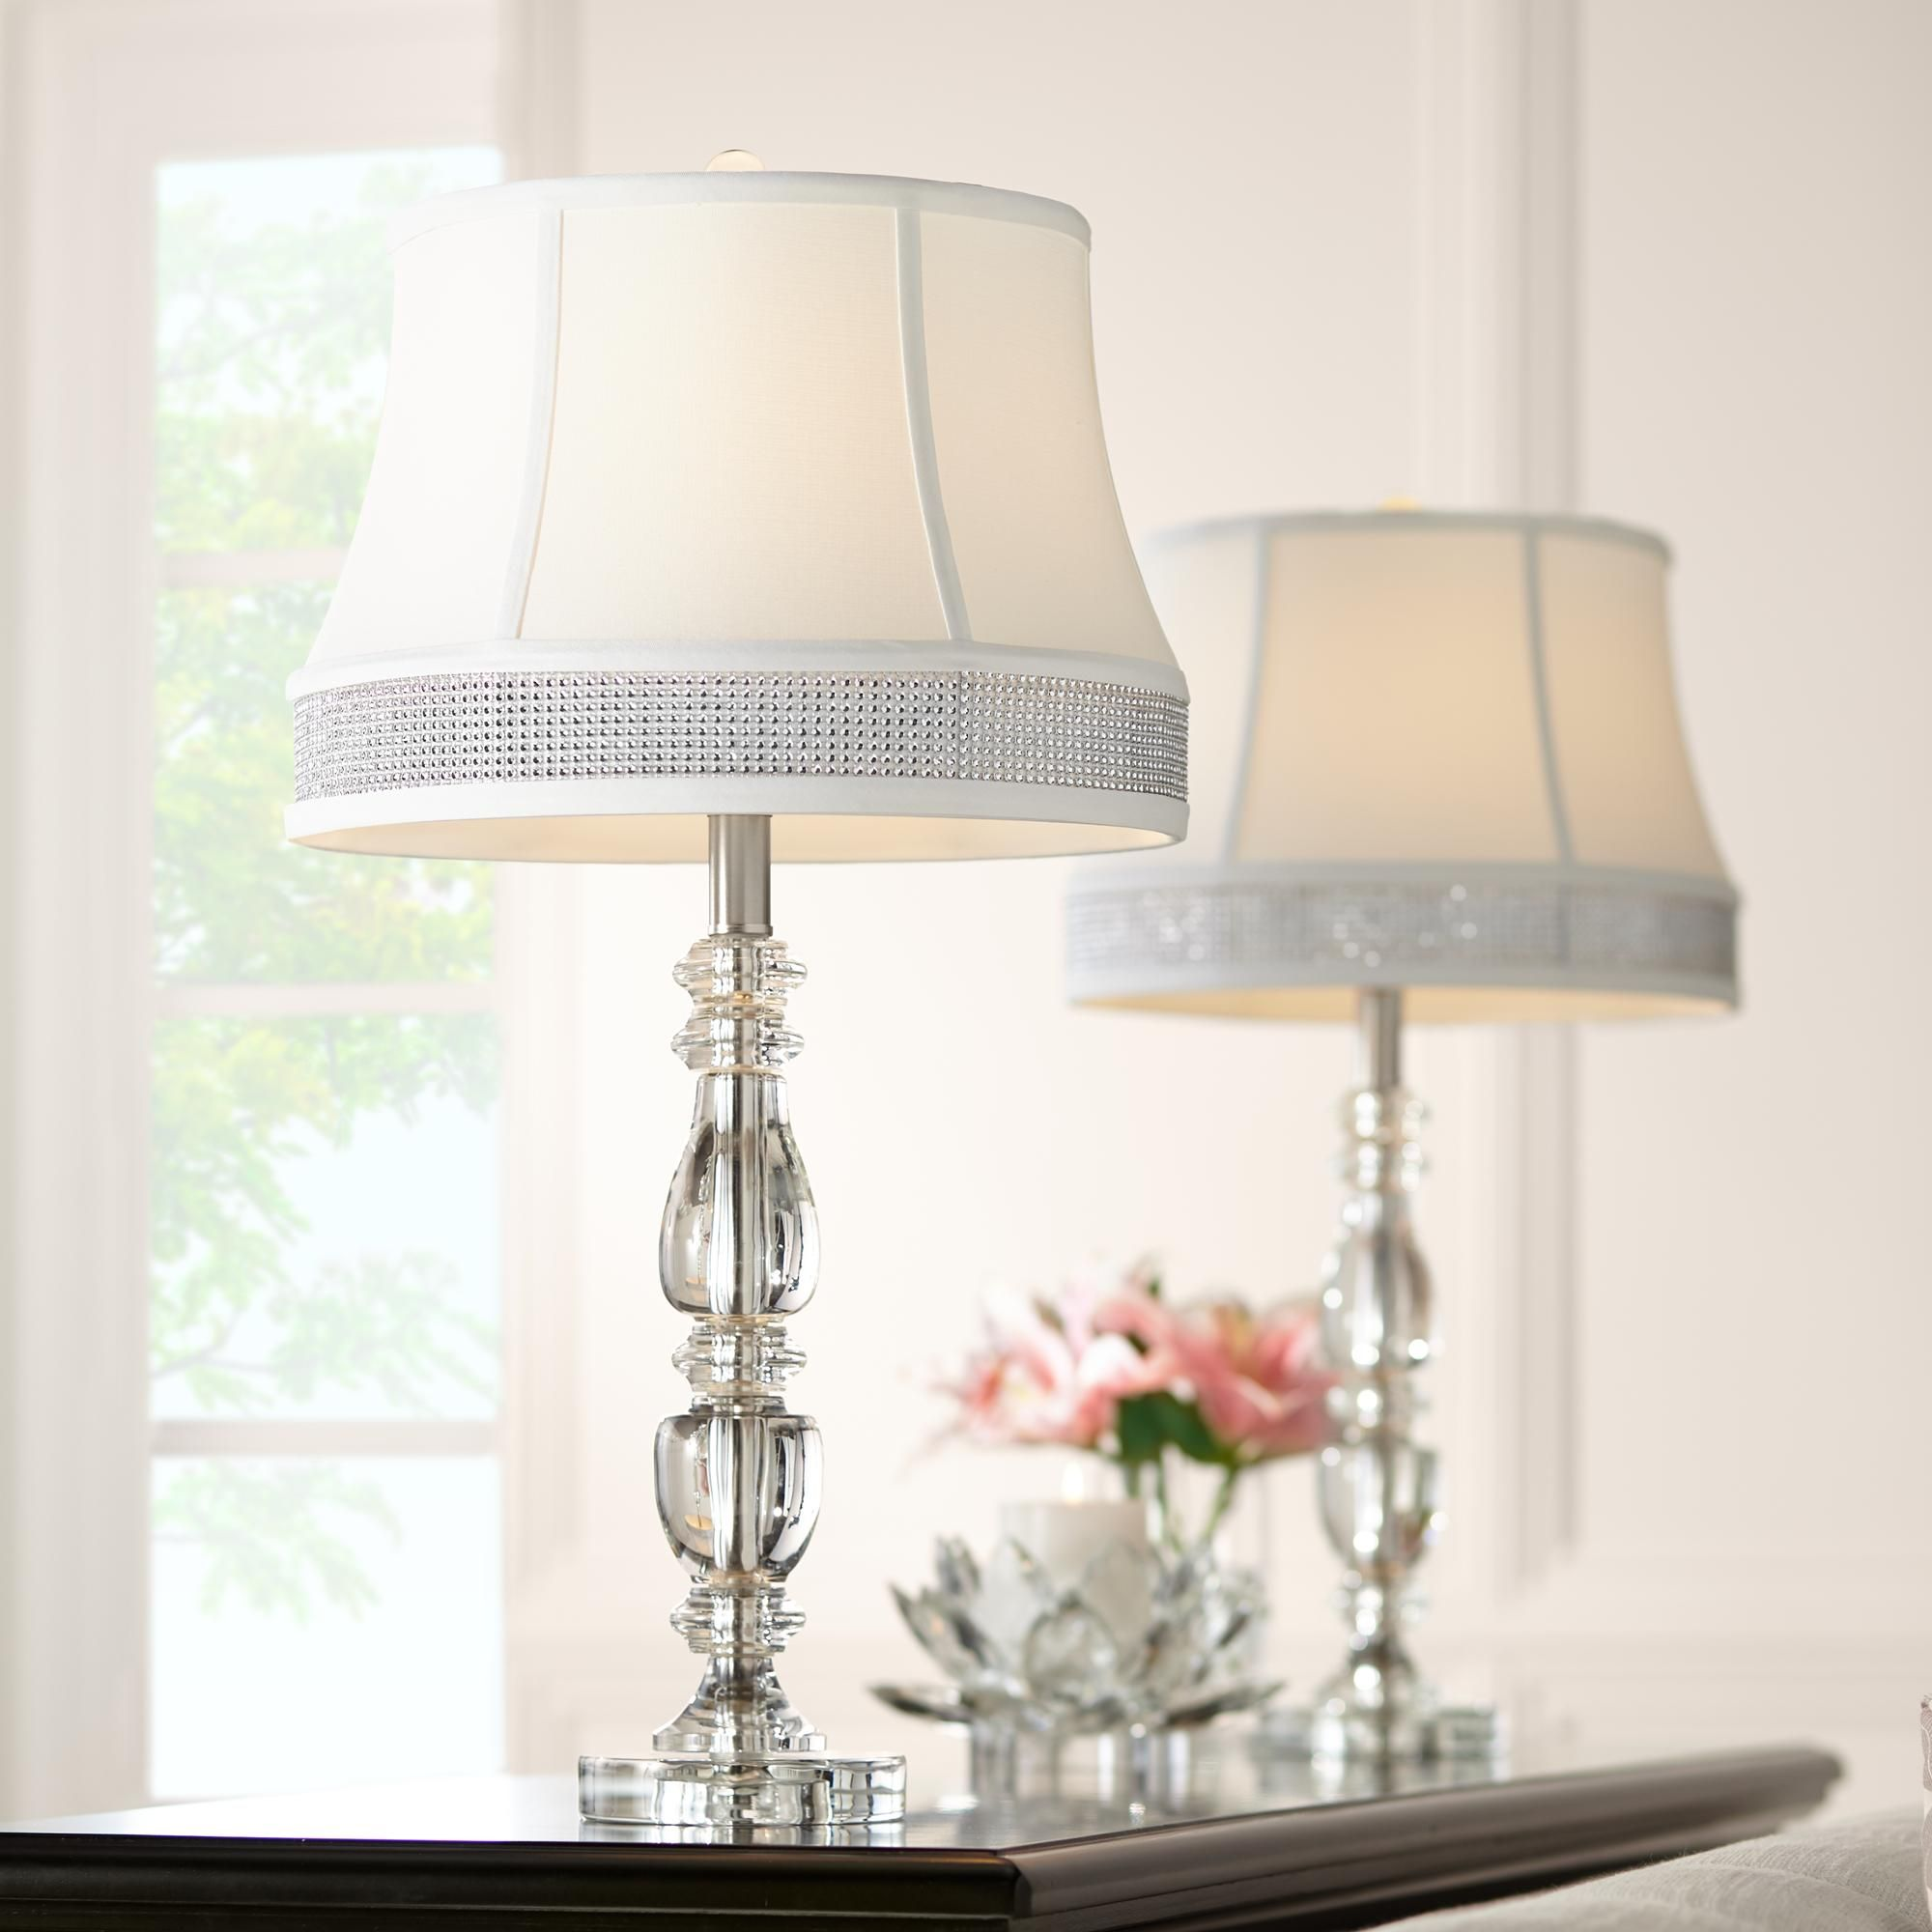 Table Lamps Ana Crystal Table Lamps Set Of 2 With Gallery Bling Shades Crystal Table Lamps Table Lamp Sets Traditional Table Lamps